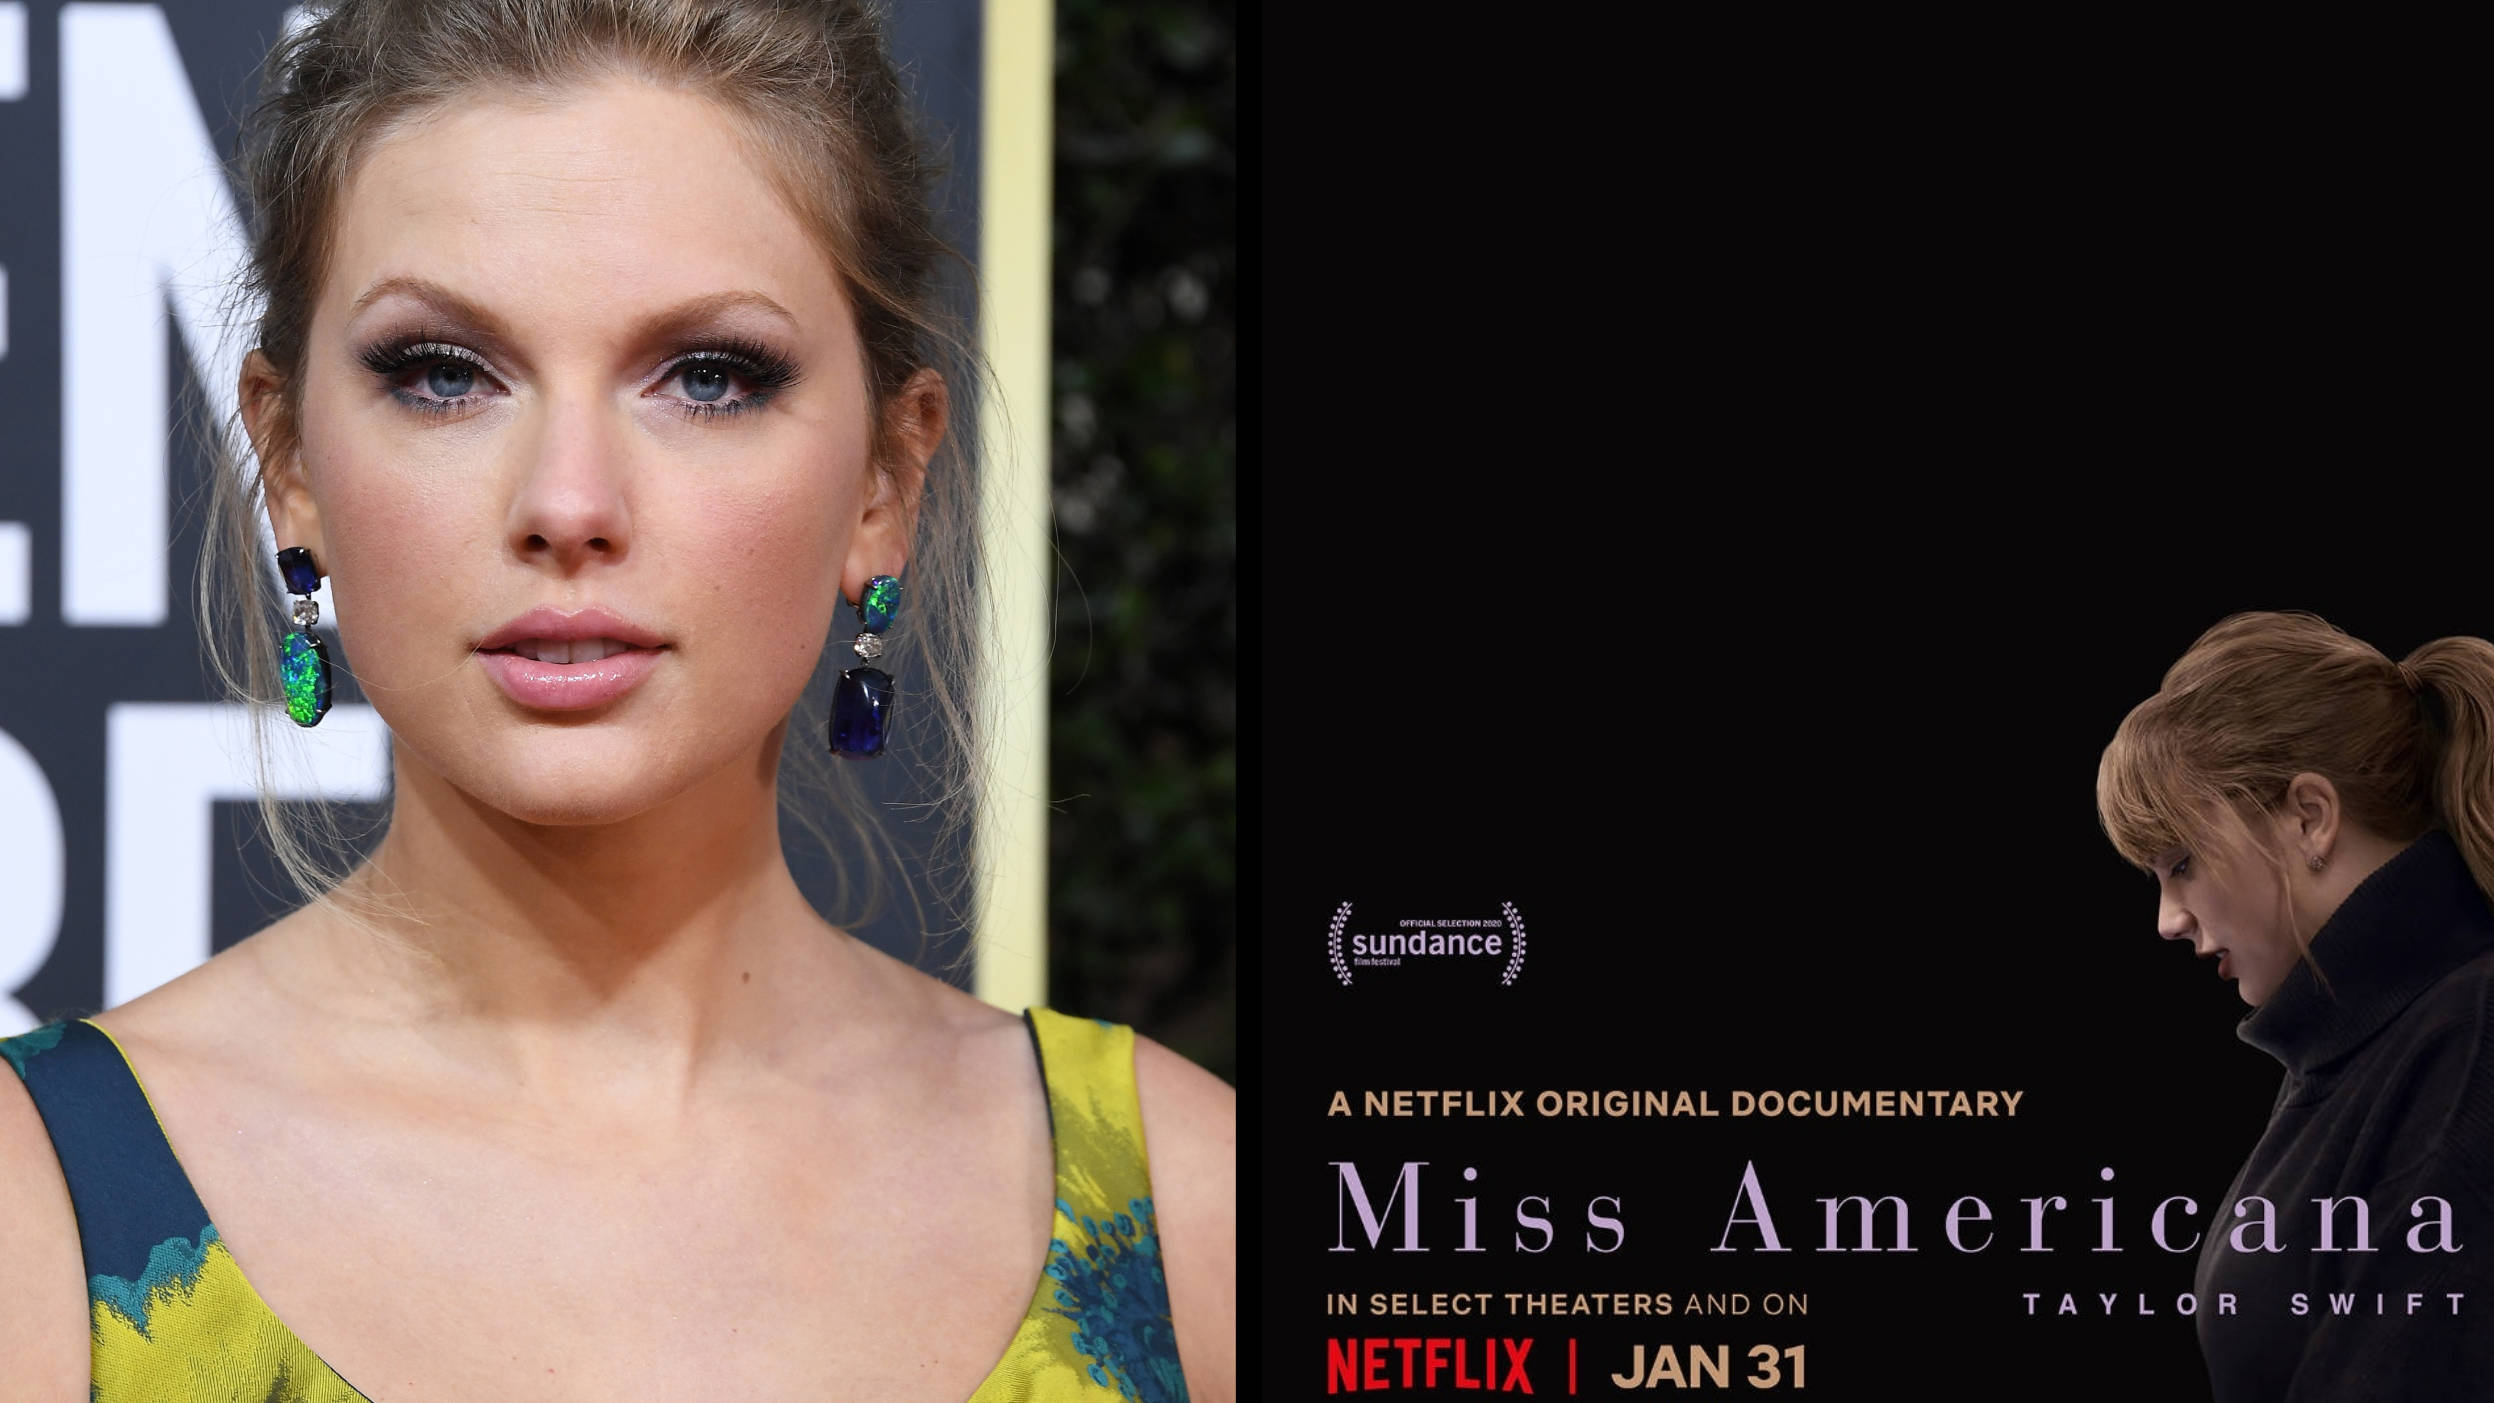 Taylor Swift's Miss Americana: release date, trailer and everything we know about the Netflix documentary